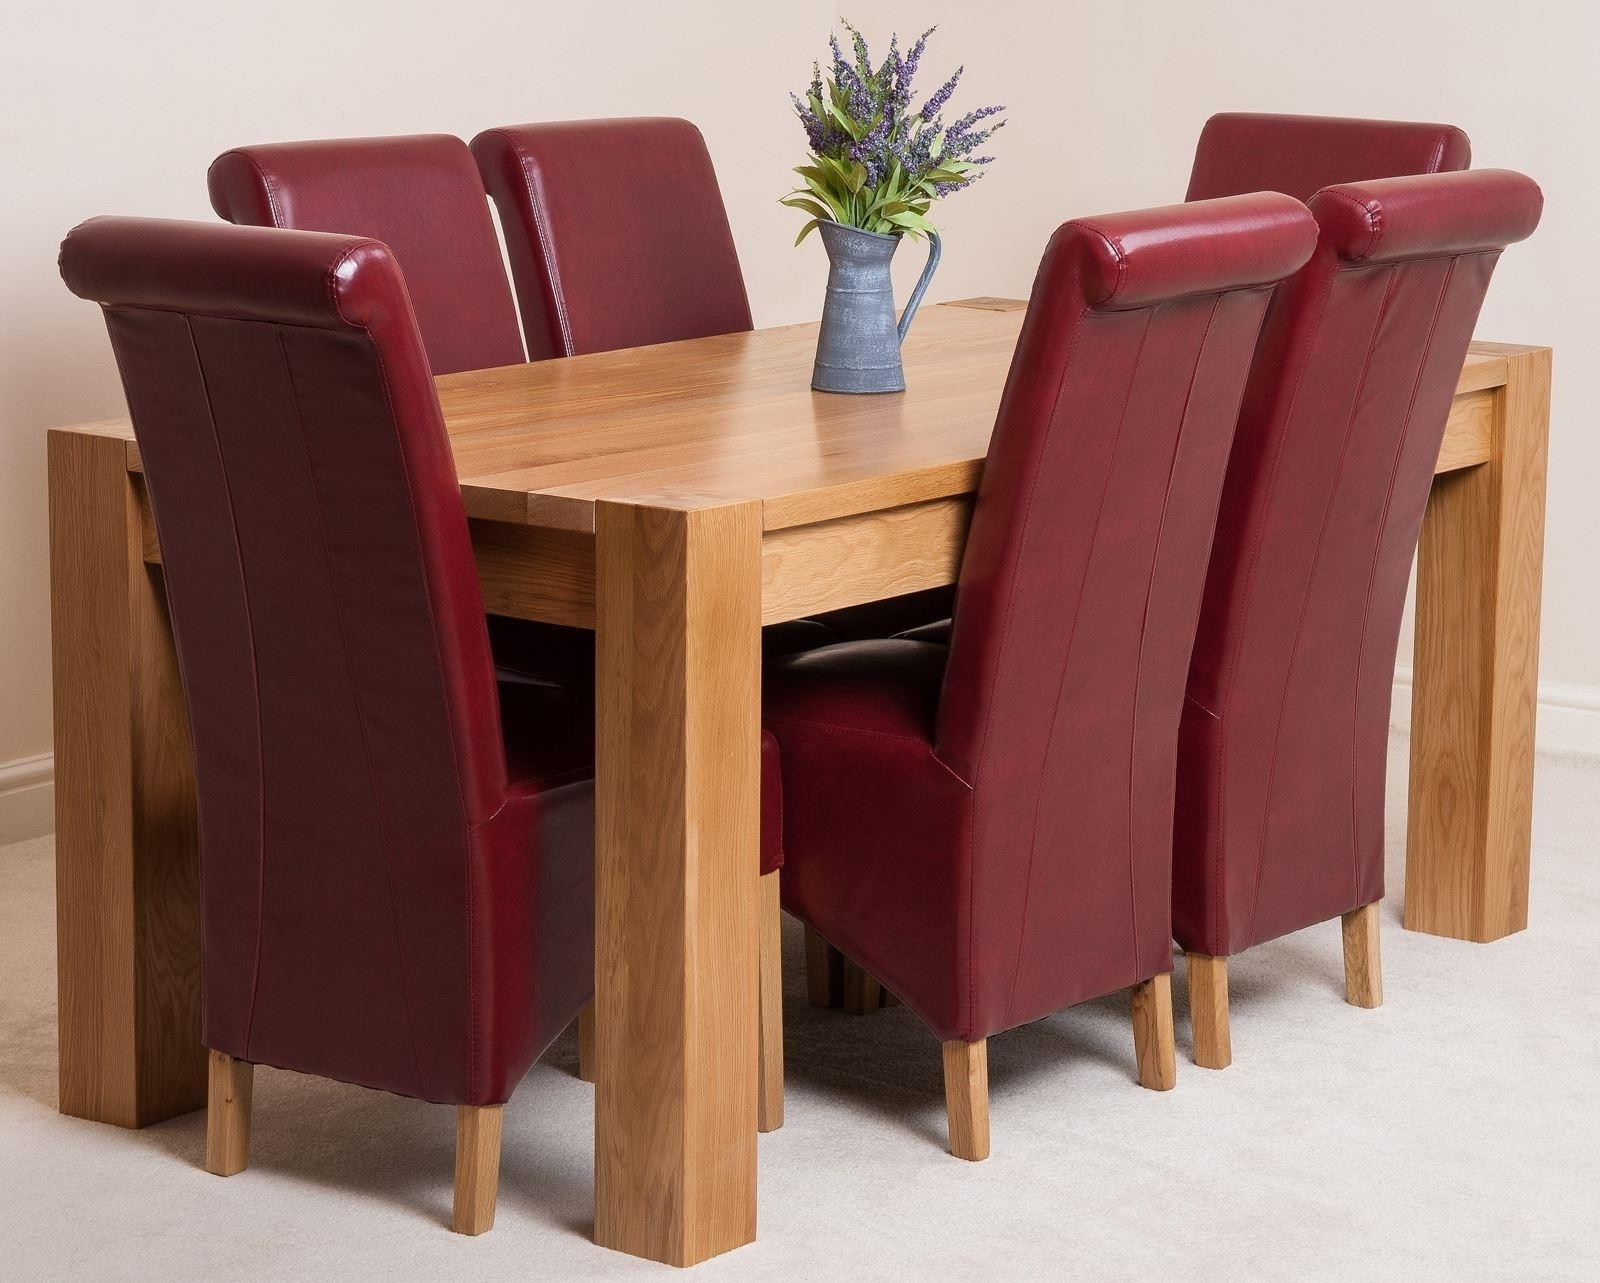 Kuba Solid Oak 180Cm Dining Table With 6 Montana Dining Chairs Inside Latest Oak Leather Dining Chairs (View 24 of 25)